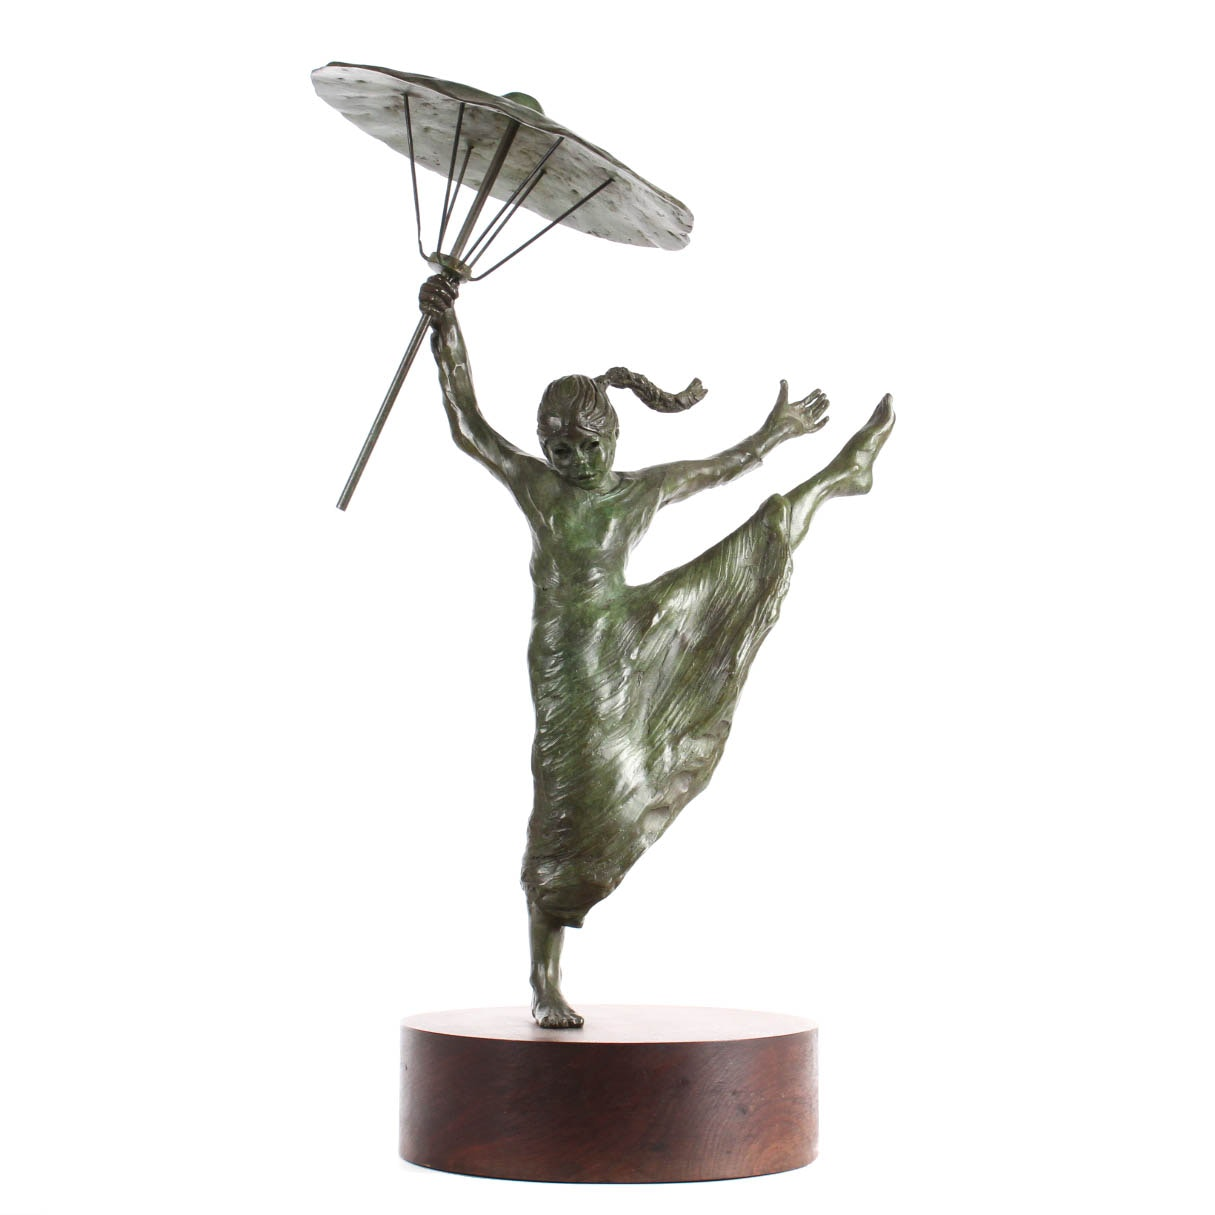 Ann Entis Original Cast Bronze Sculpture